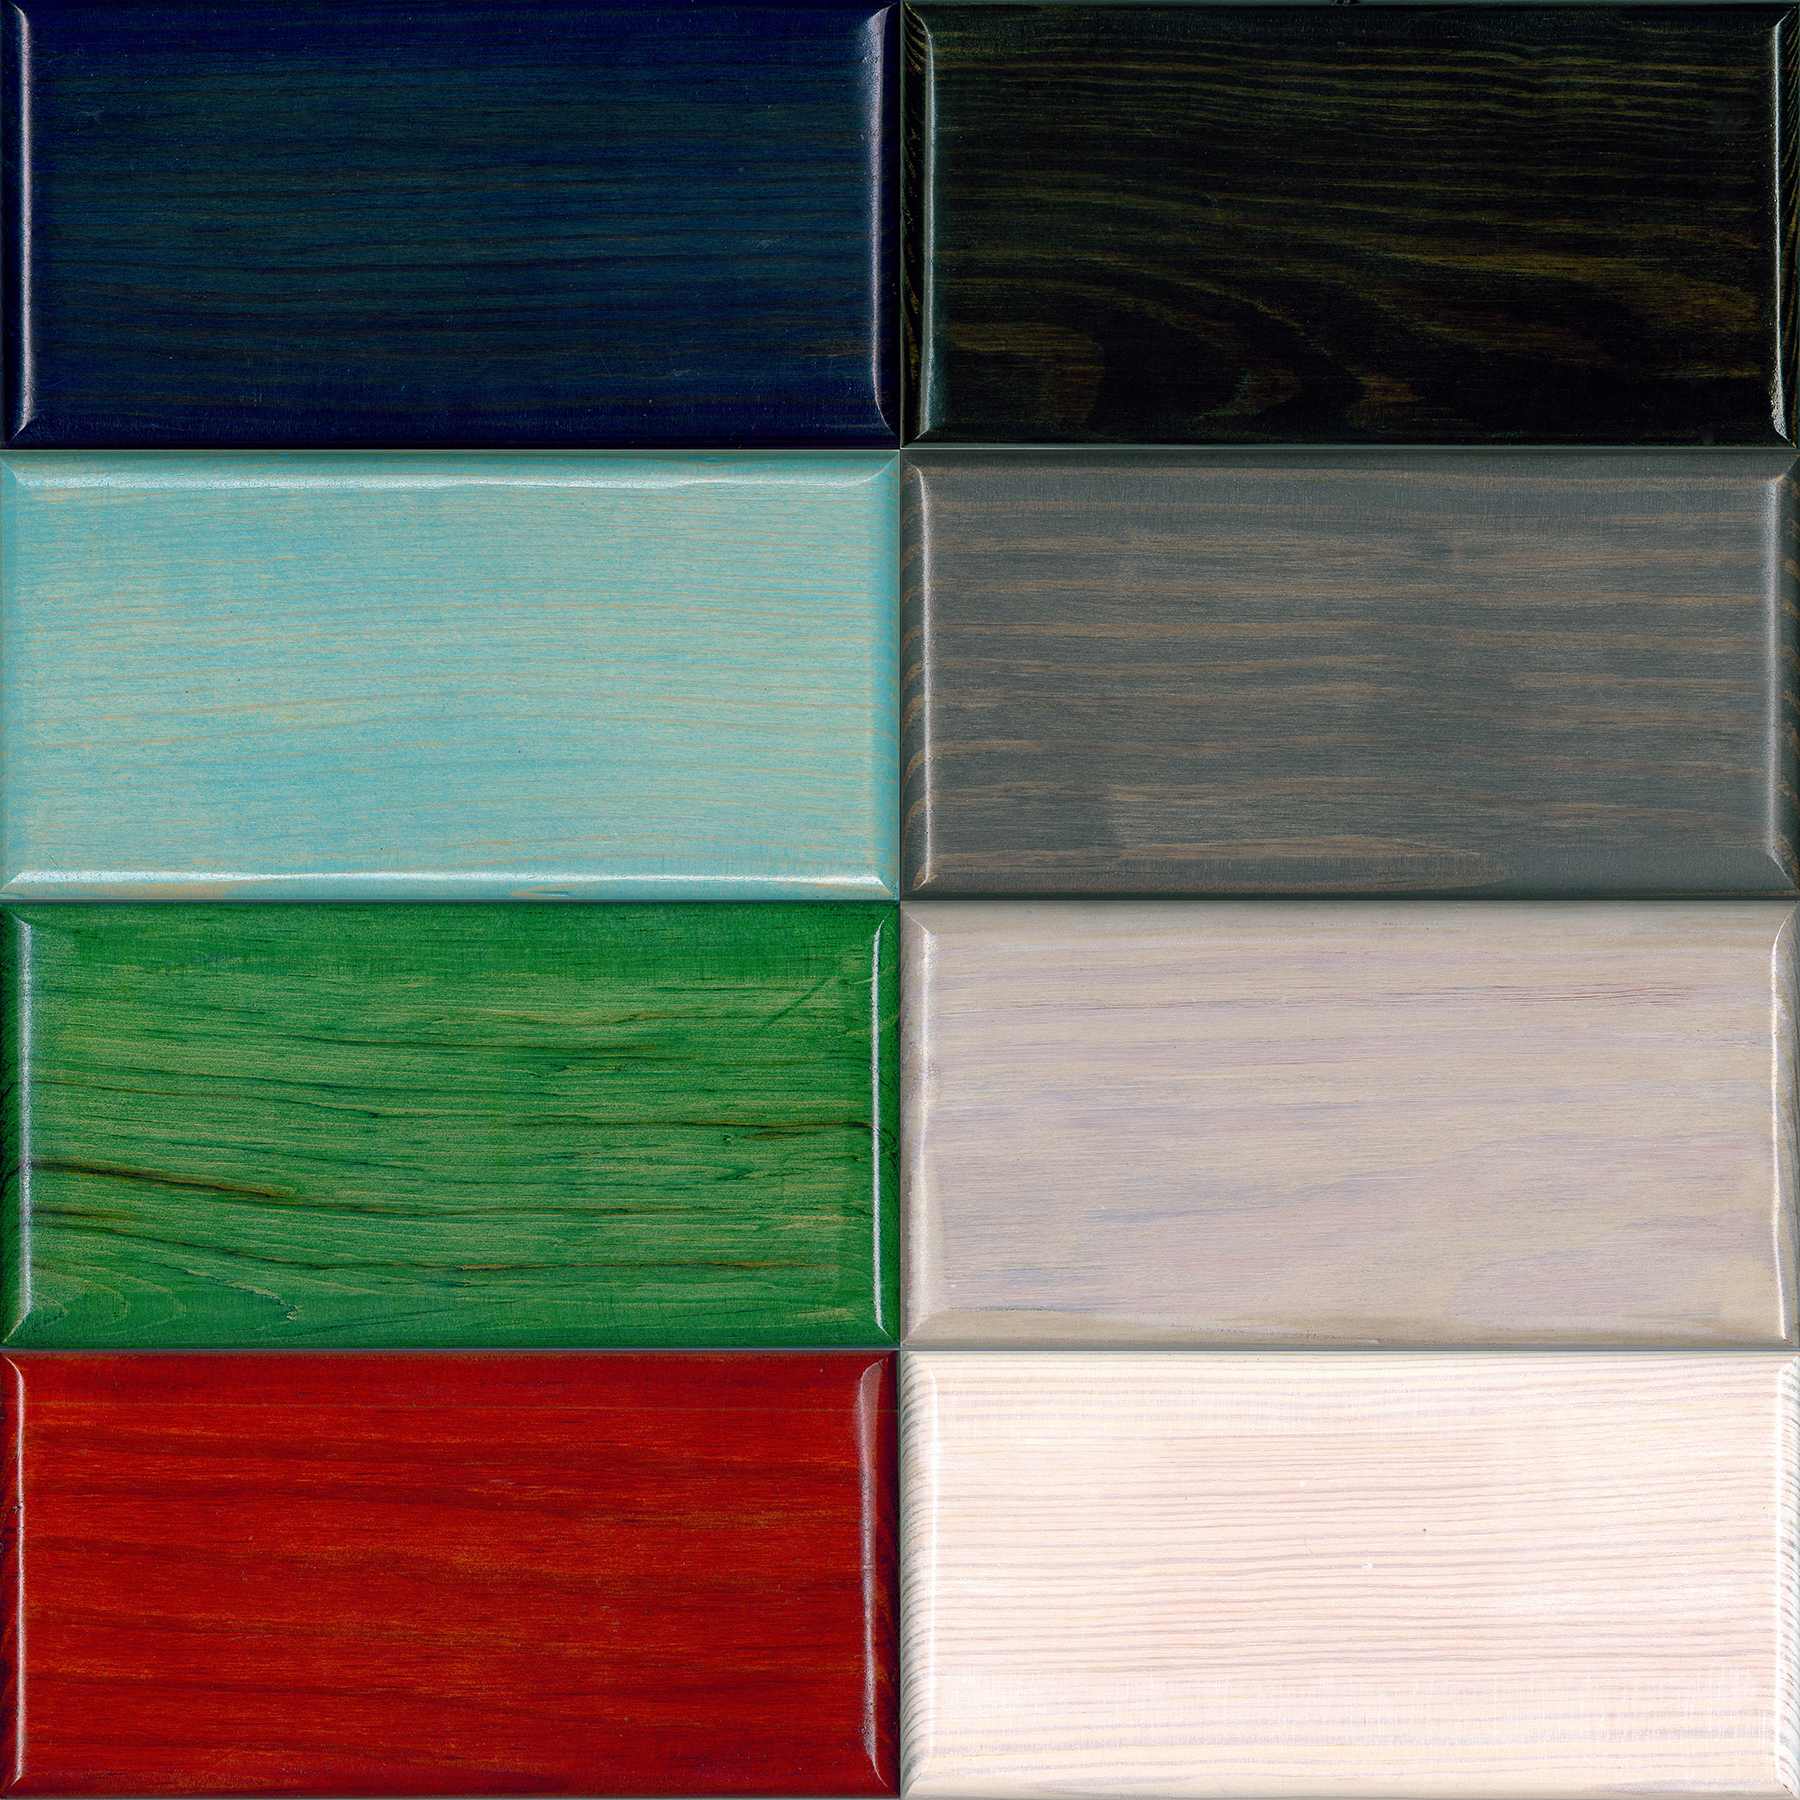 PINE //   TILES / MULTI-COLORED DESIGN   | CLICK TO SEE IT CLOSR